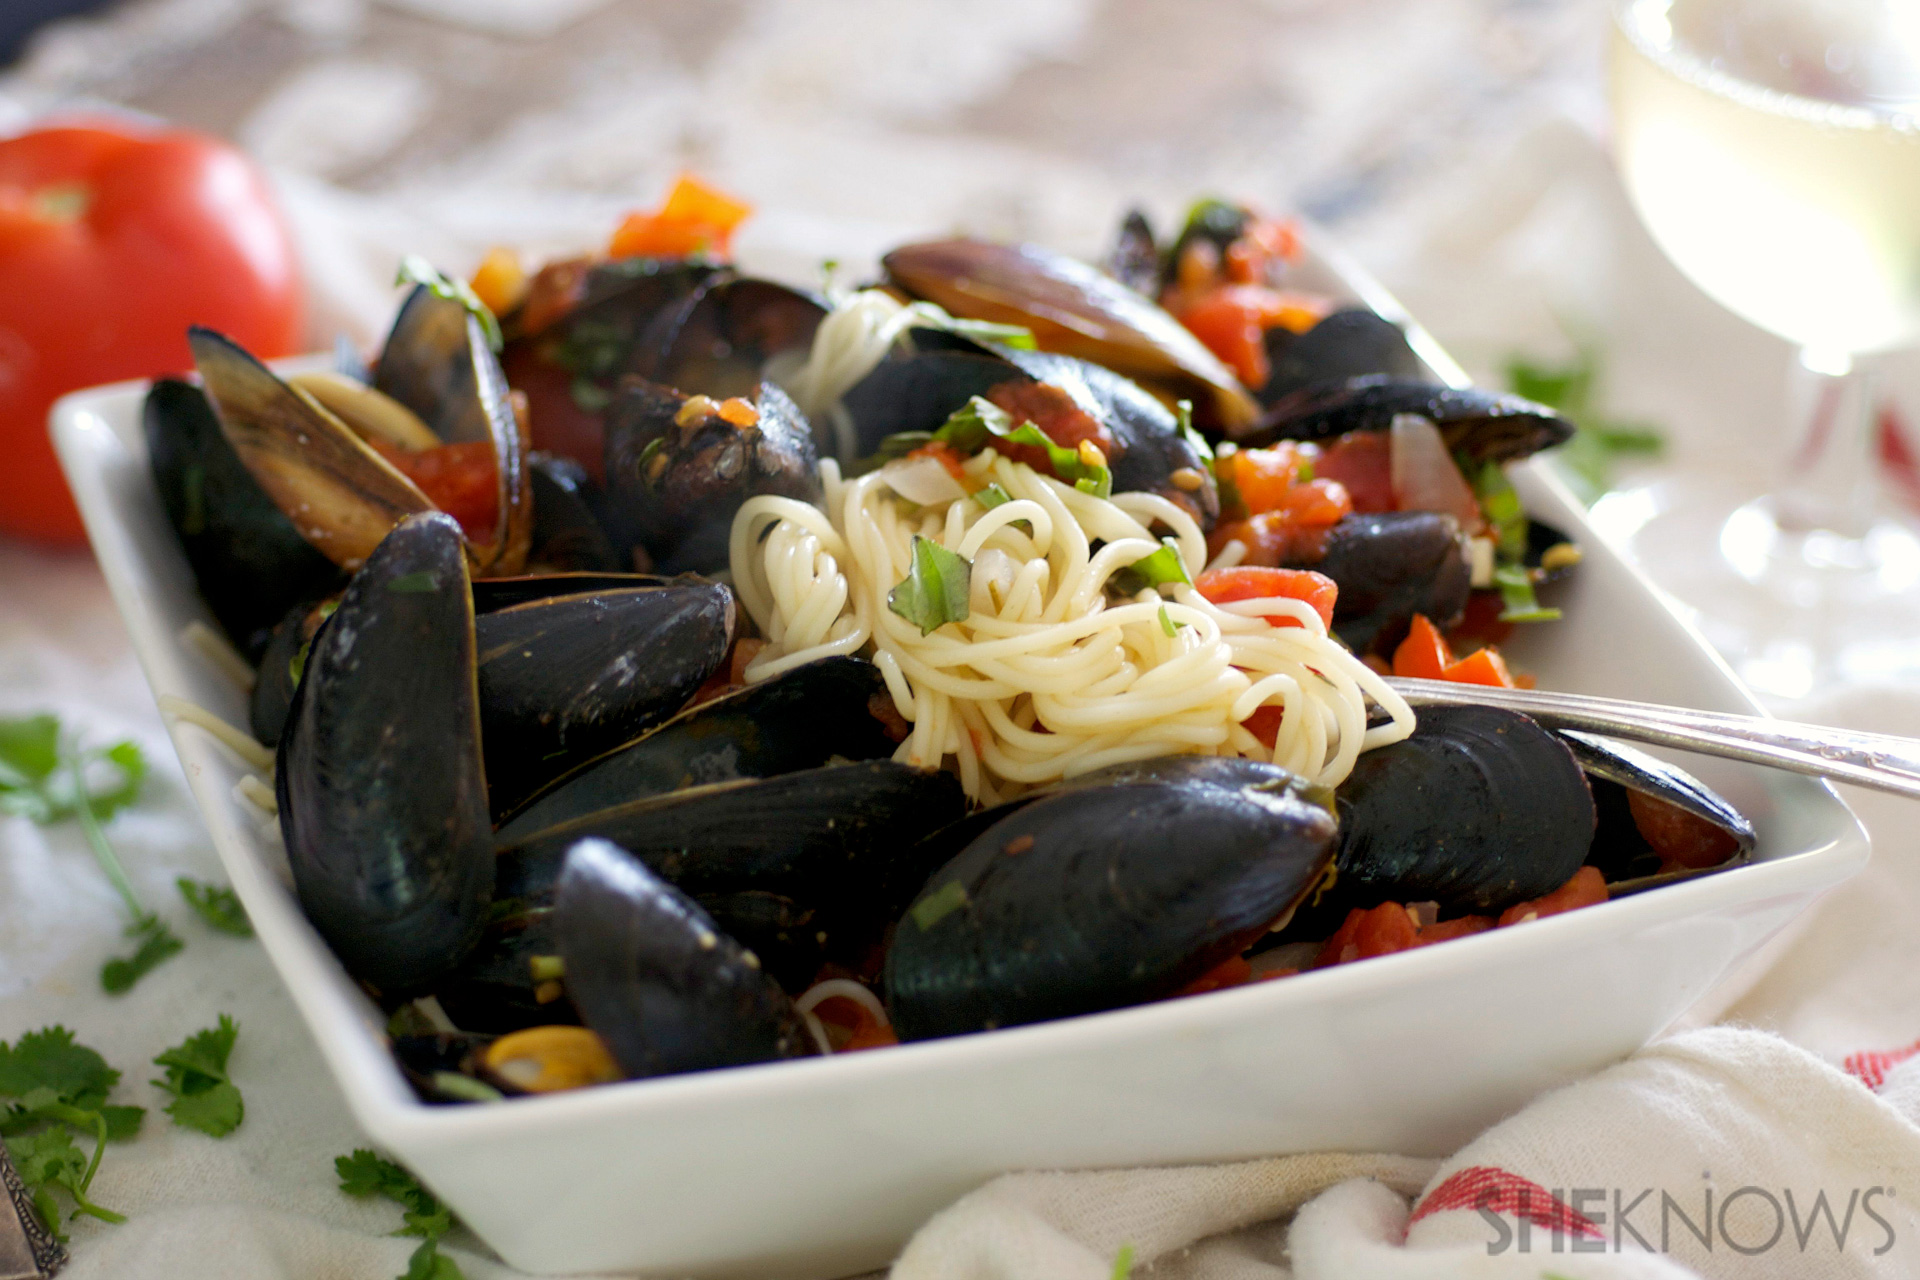 Angel hair with red pepper sauce and mussels